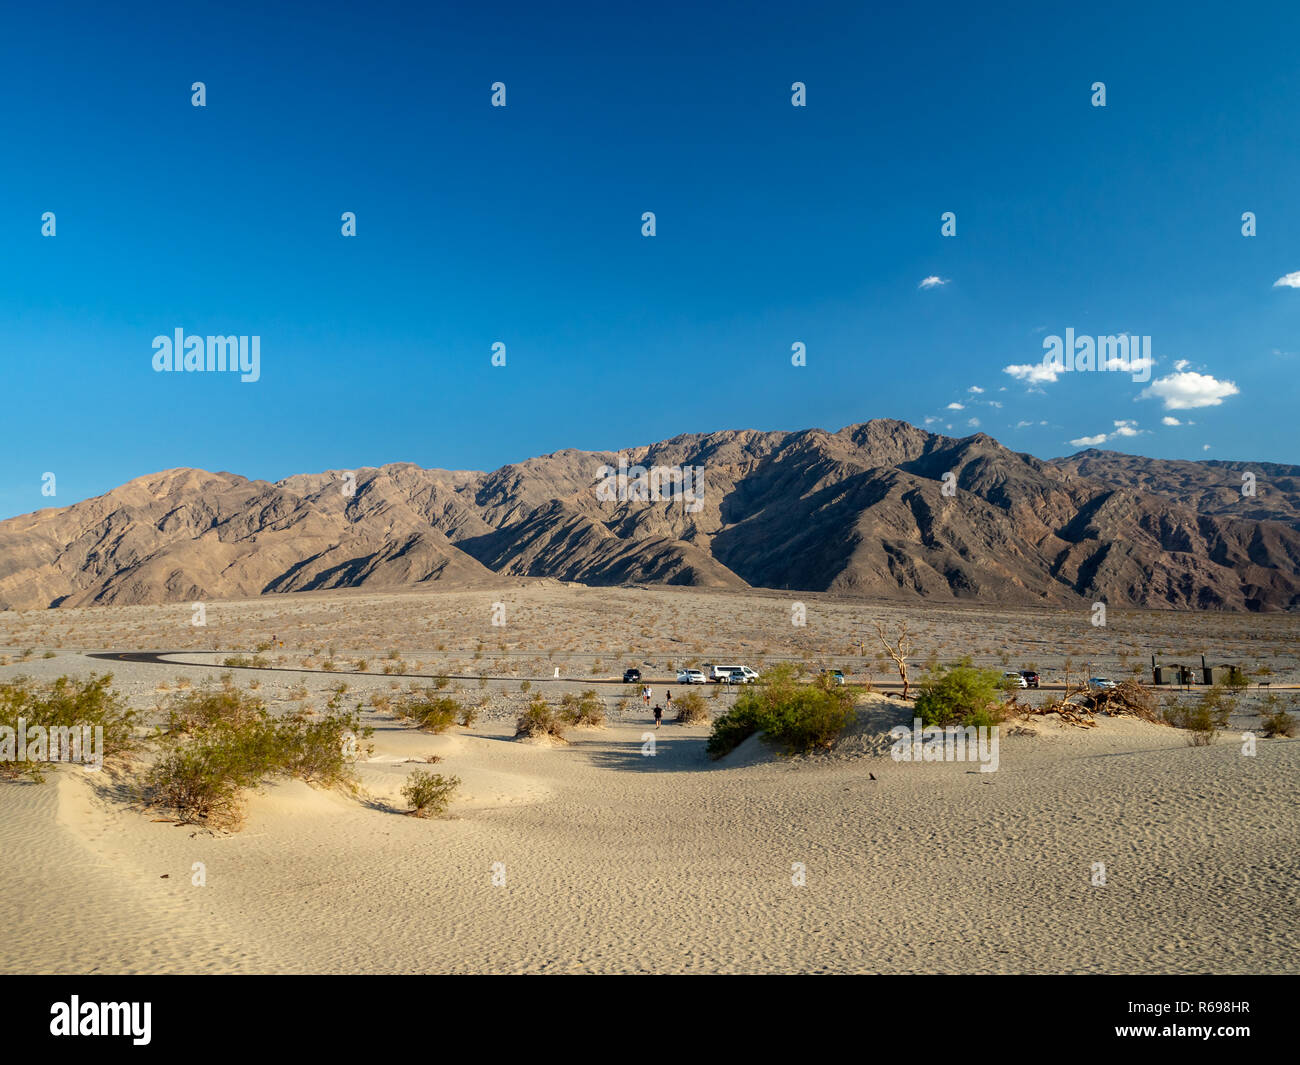 Death Valley, Mojave Desert road, California, USA: The hottest place on Earth - Stock Image